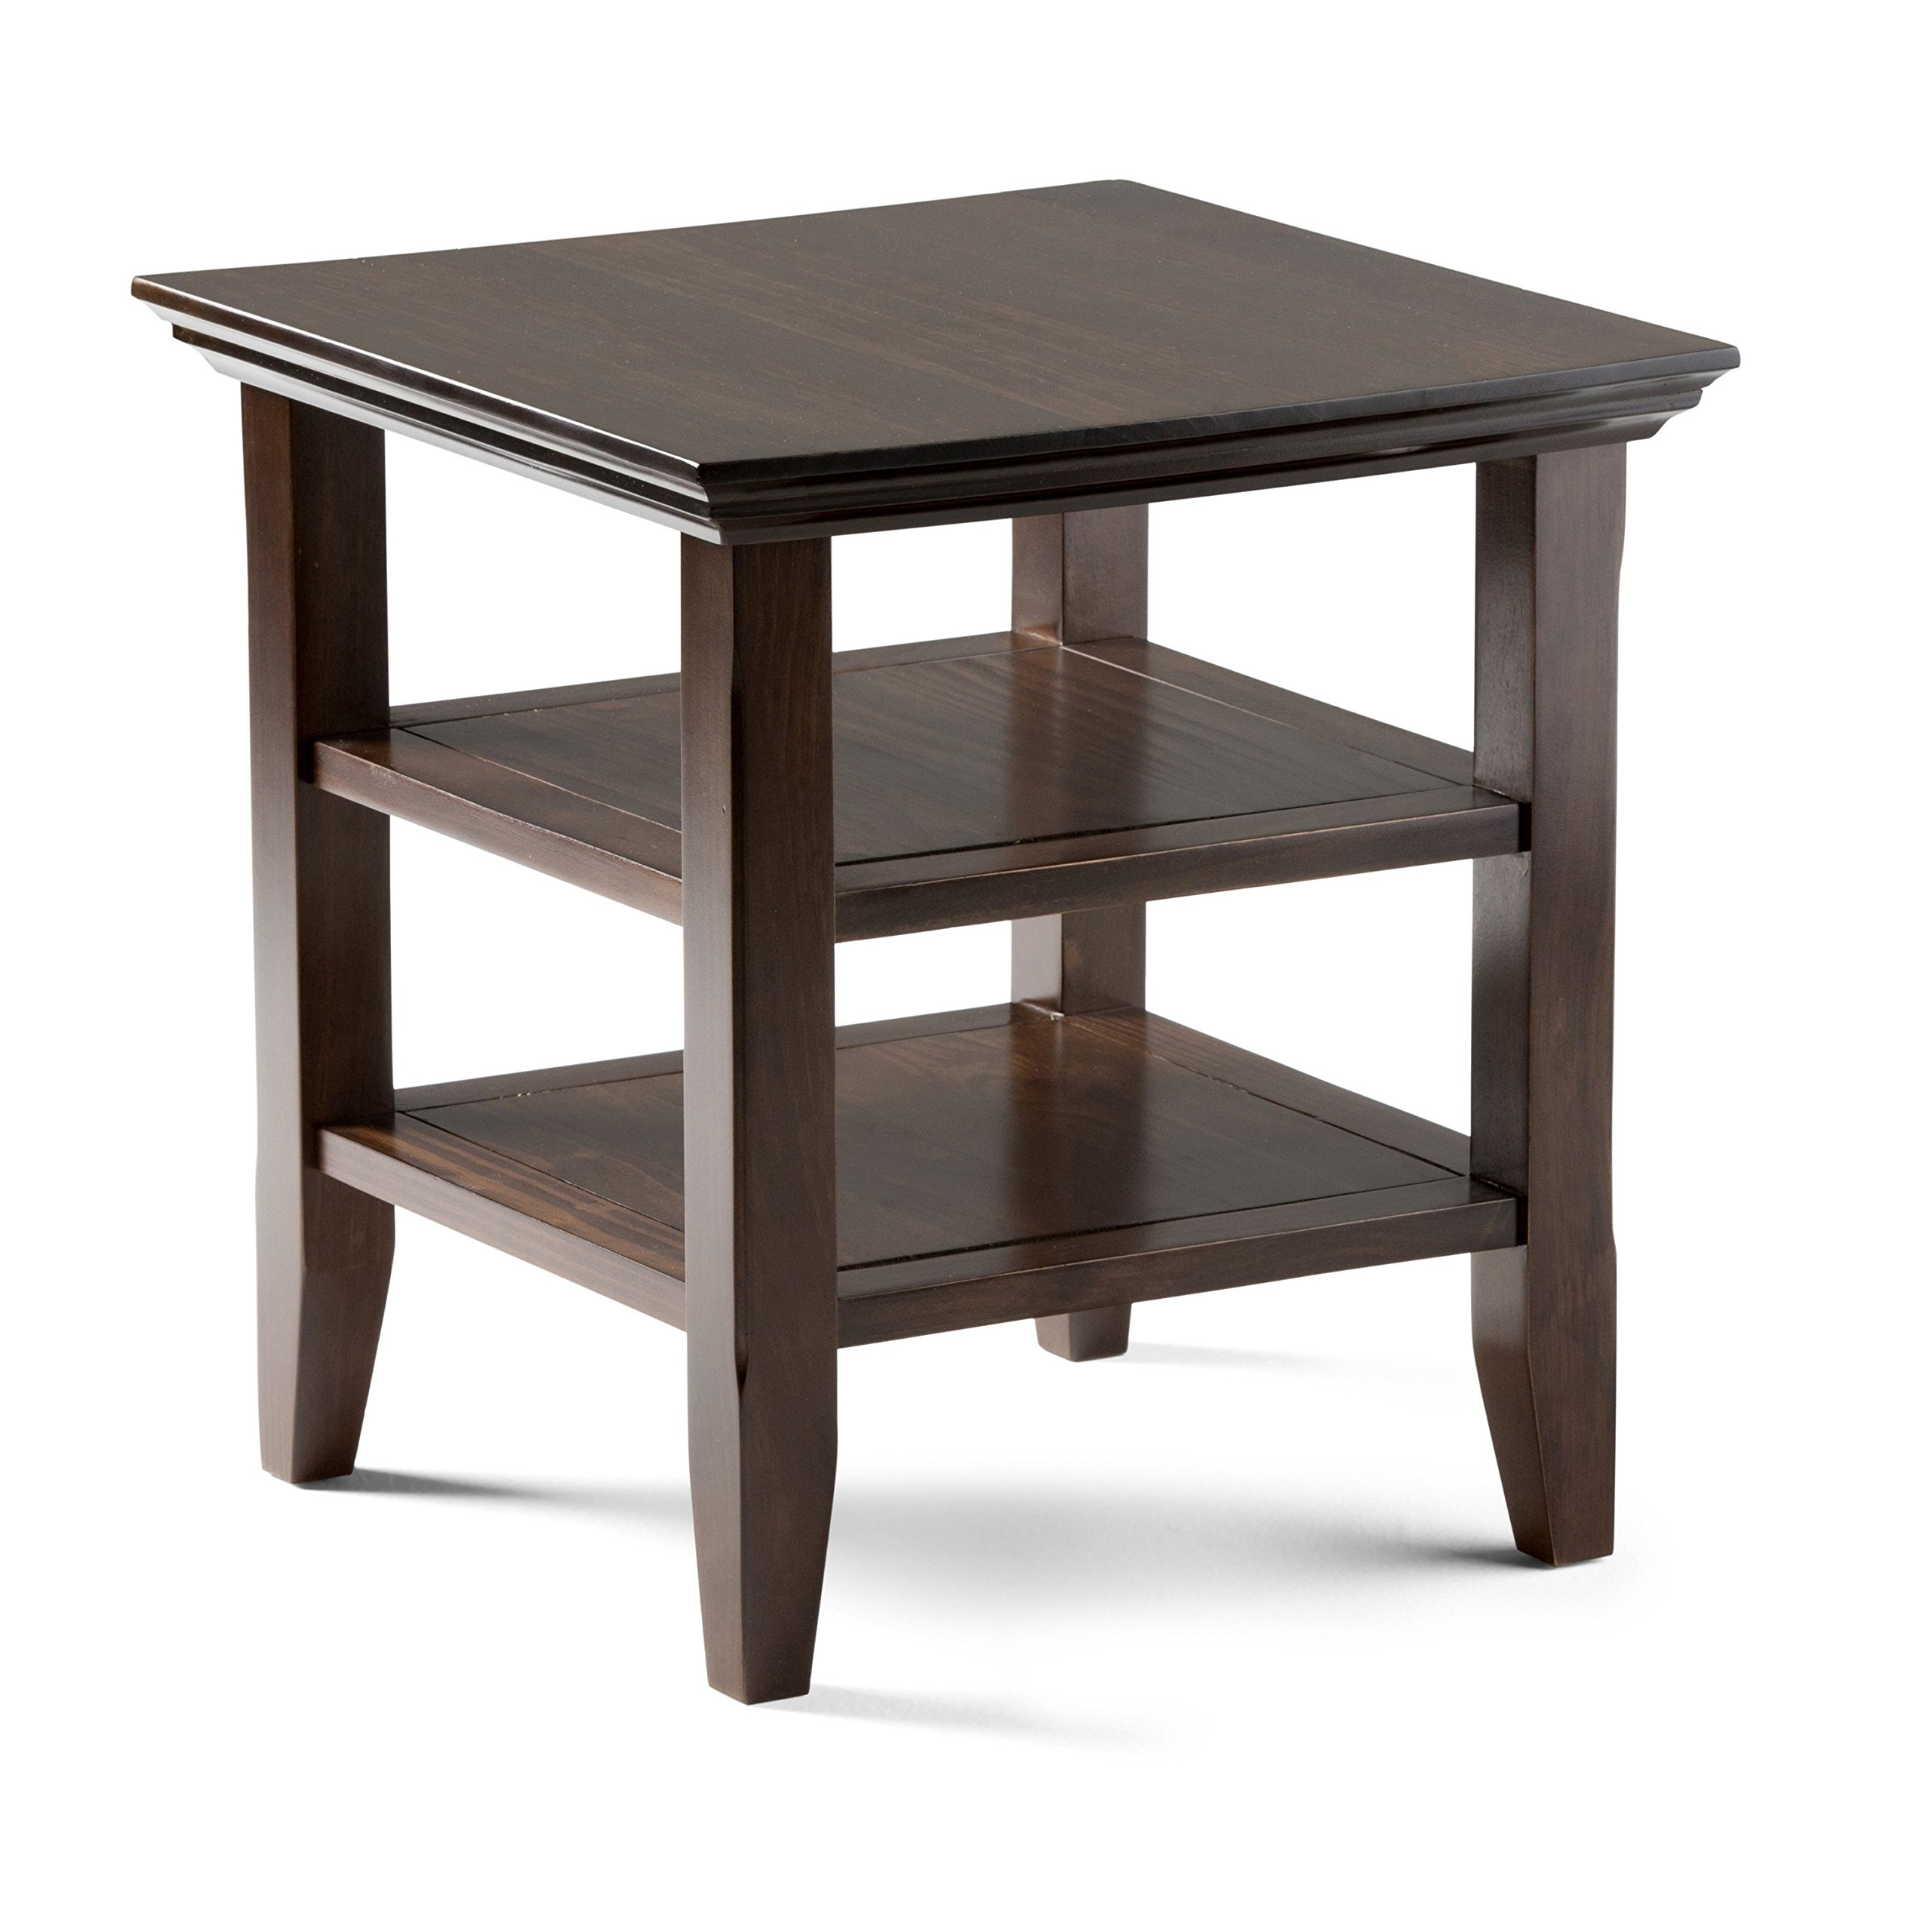 Simpli Home Acadian Solid Wood End Table, Rich Tobacco Brown by Simpli Home (Image #1)